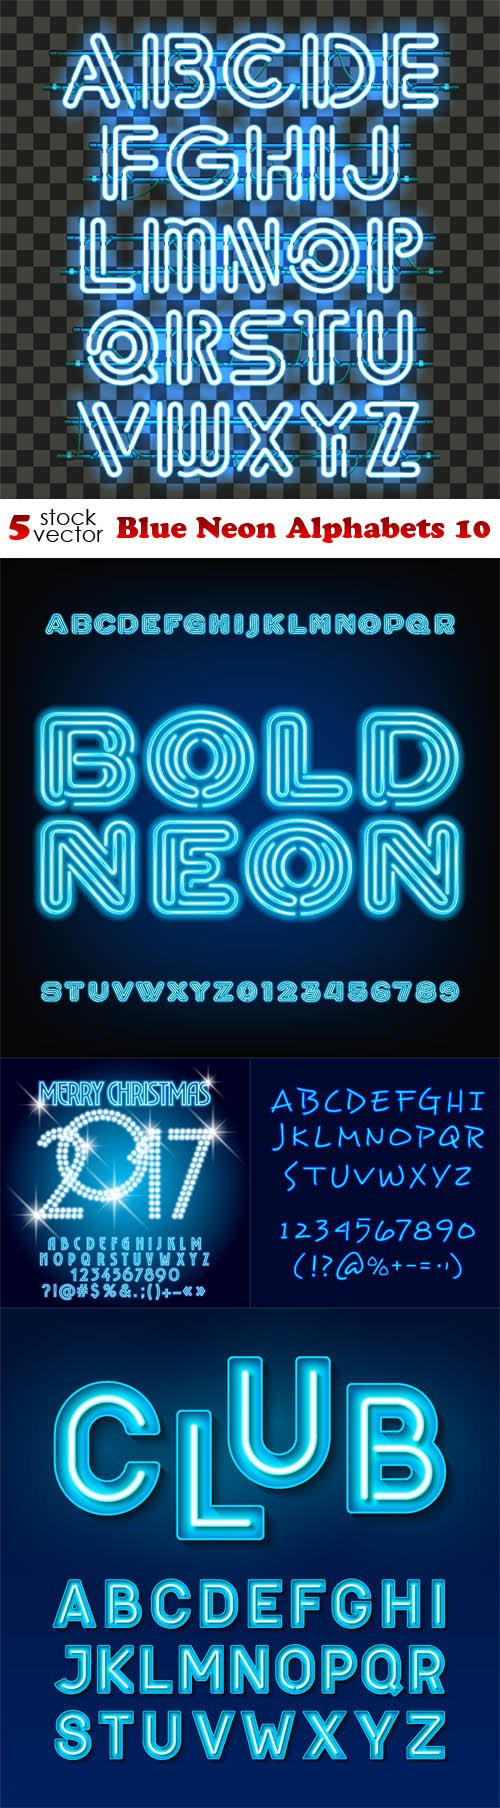 Vectors - Blue Neon Alphabets 10